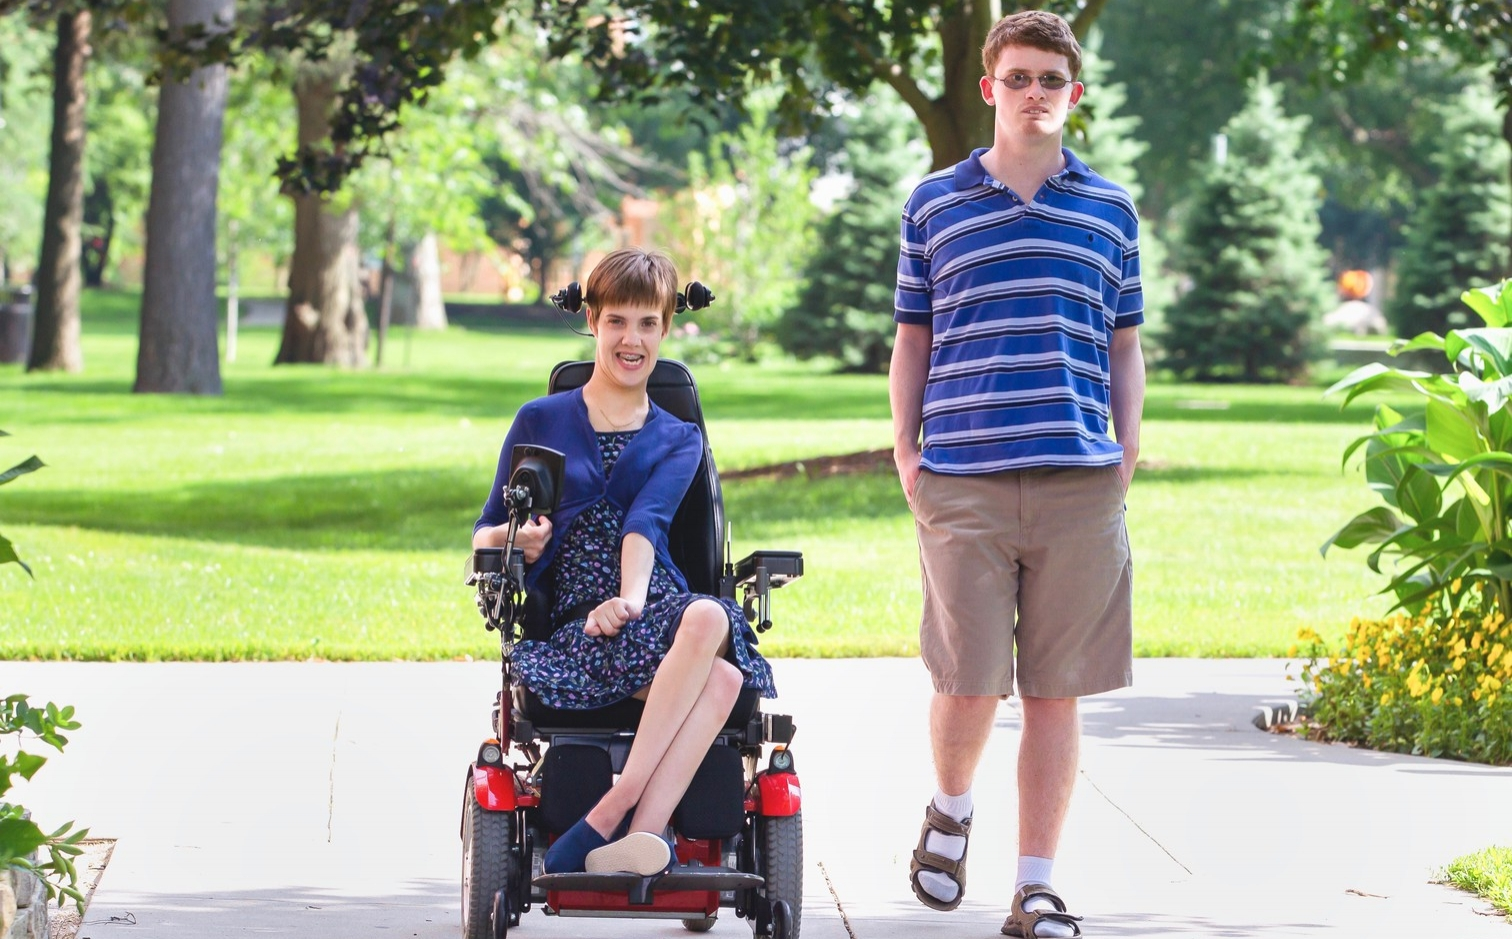 A young woman riding a wheelchair and young man on foot, both white, walk side-by-side in a park